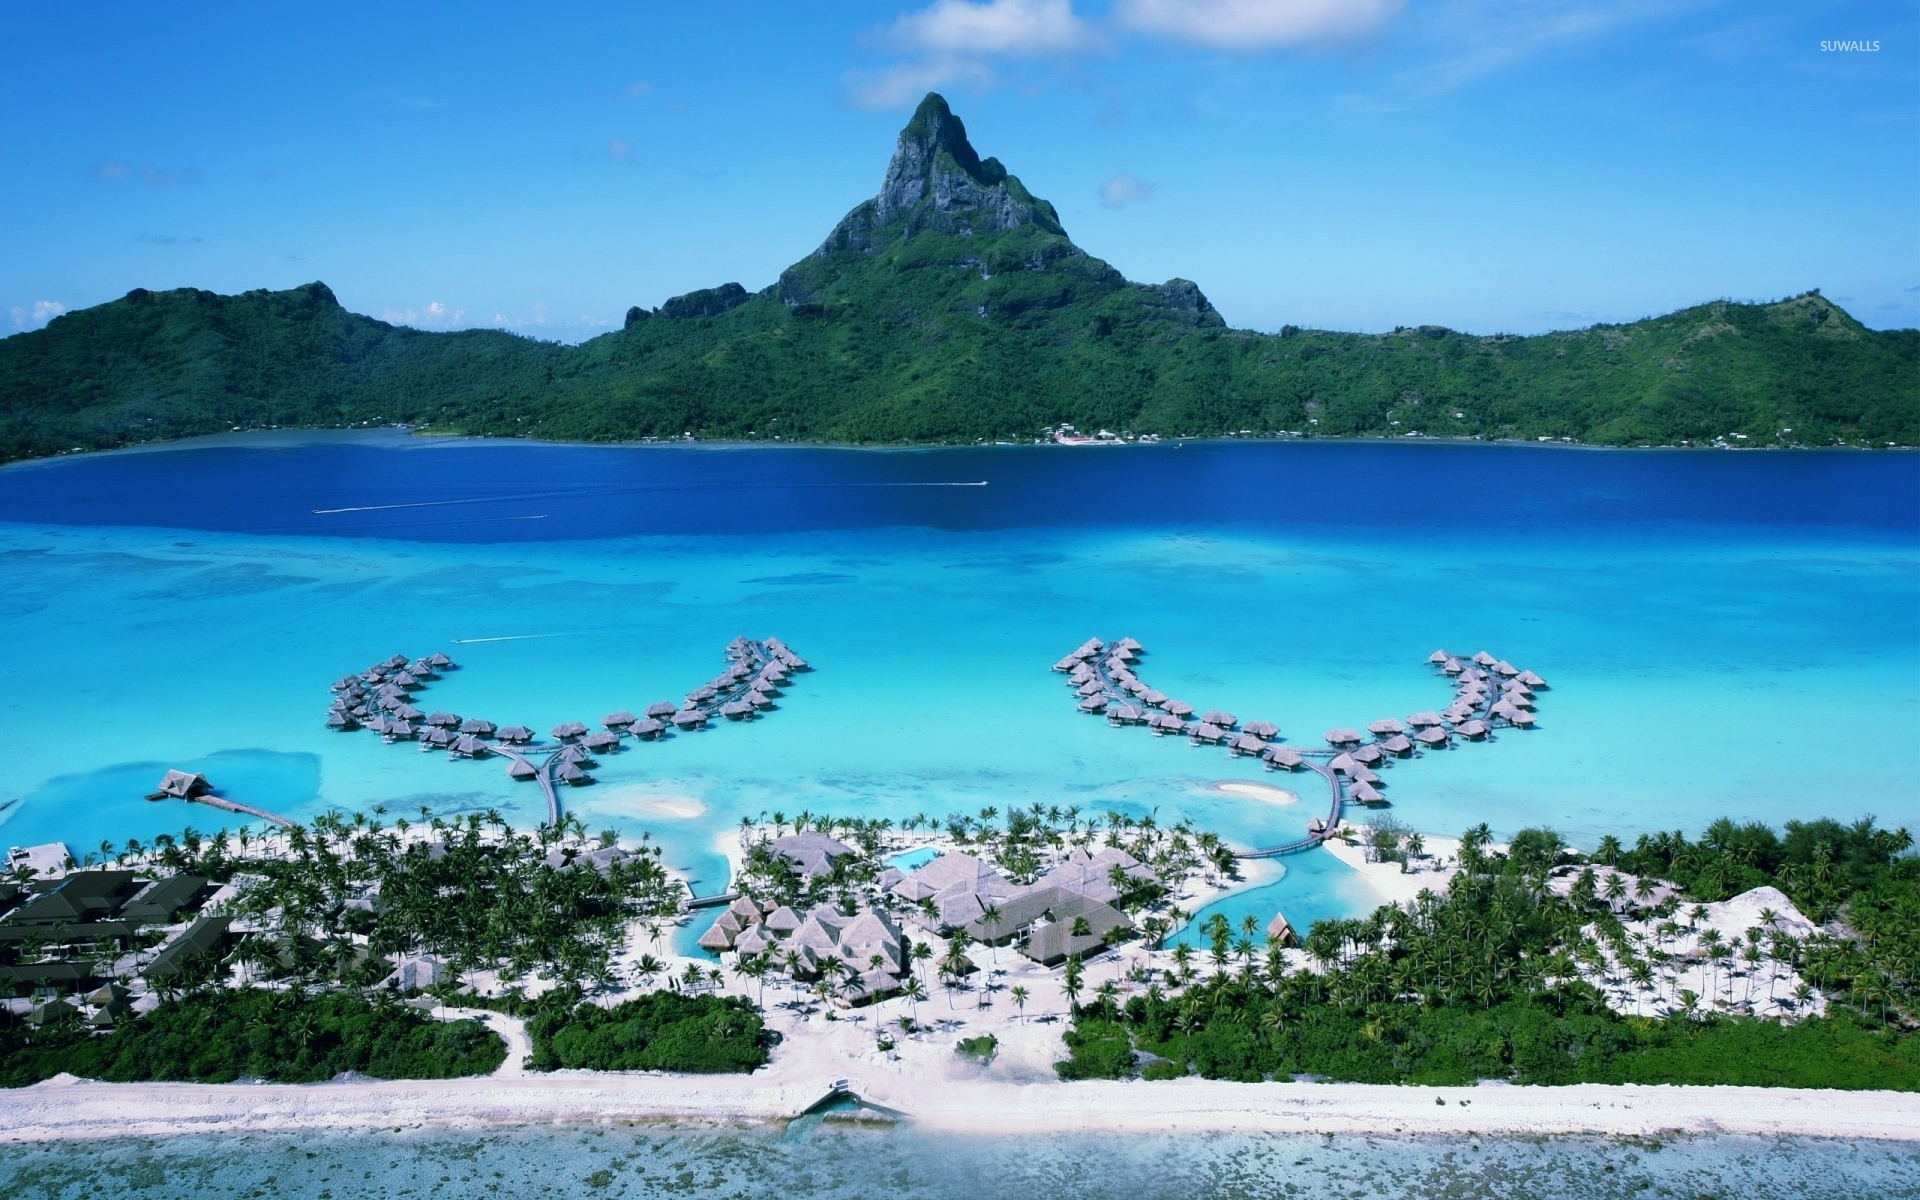 Popular Wallpaper High Resolution Bora Bora - splendid-tropical-resort-in-bora-bora-49690-1920x1200  2018_849178.jpg